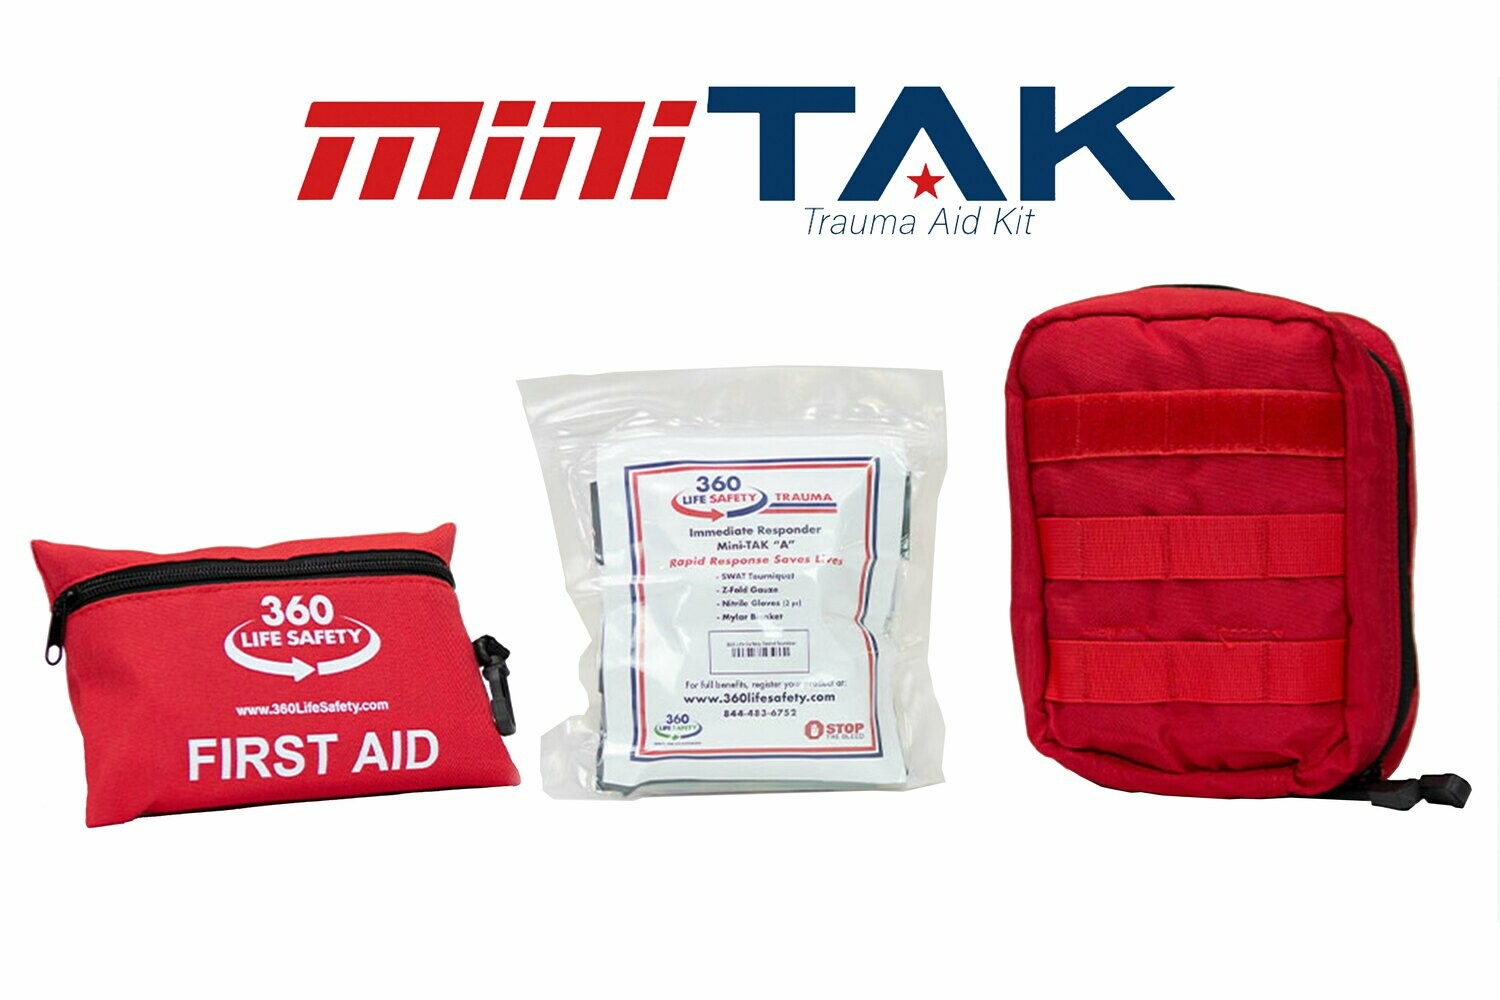 """mini-TAK """"A"""" Kit with Molle Bag and First Aid Kit"""